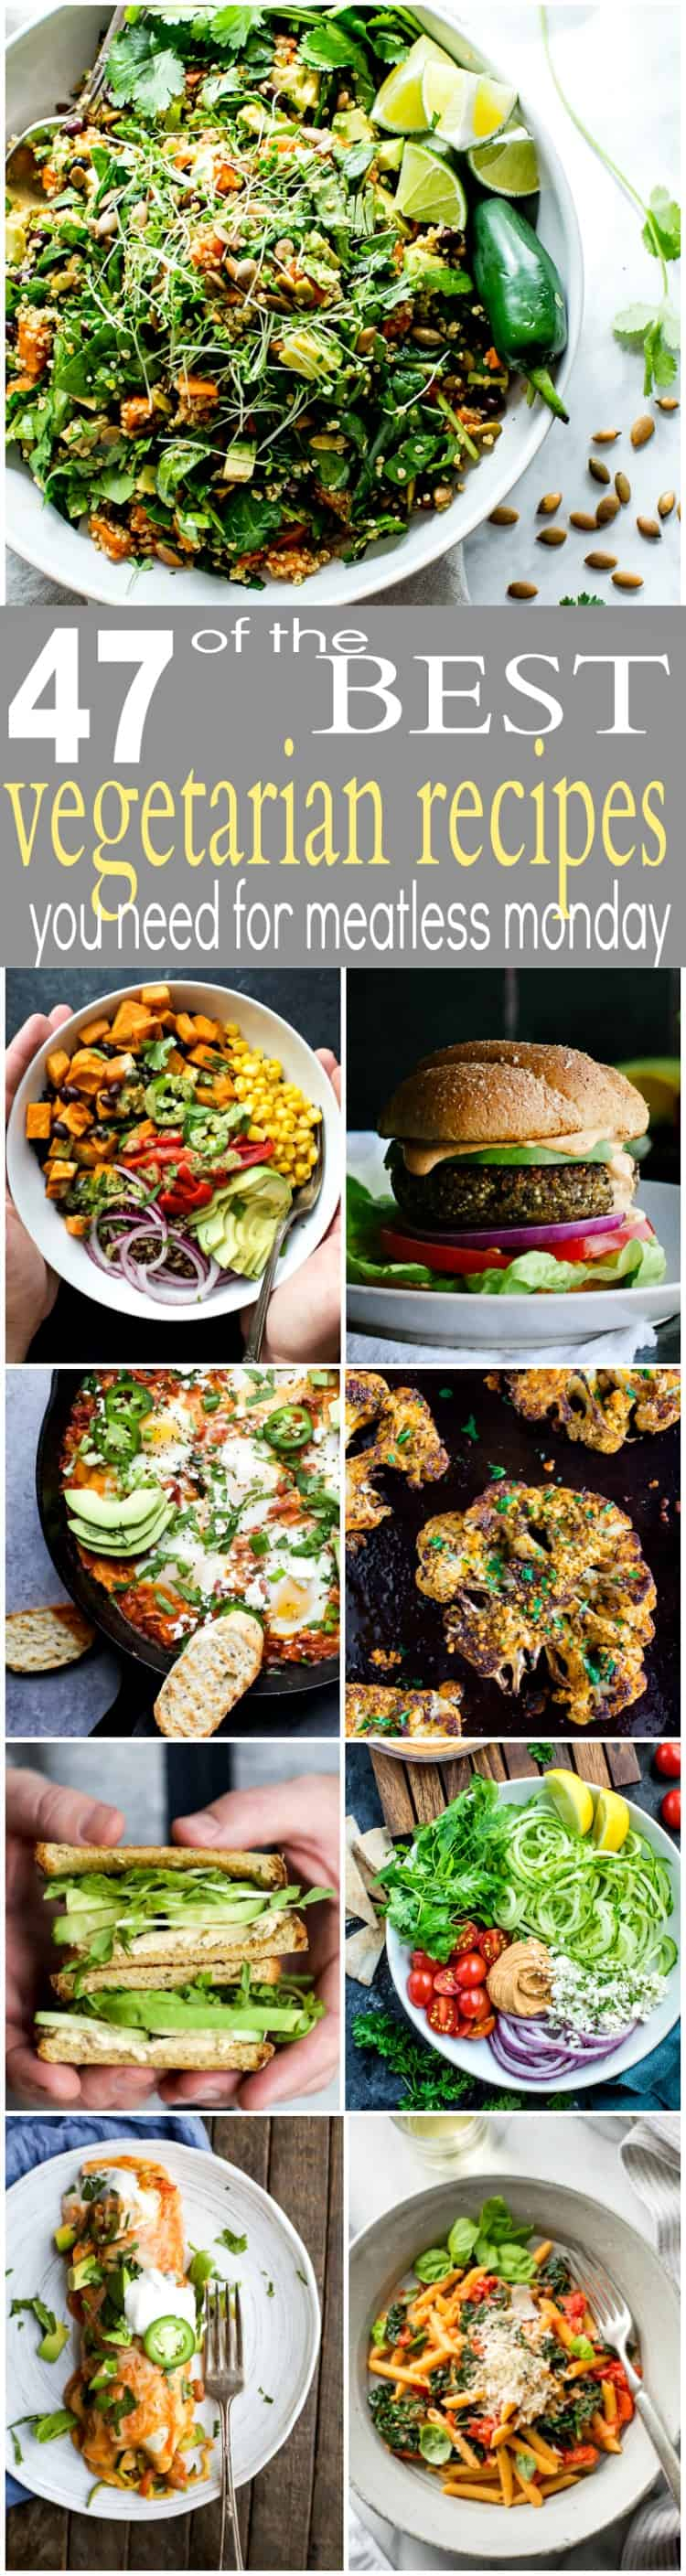 47 of the BEST Vegetarian Recipes out there! Loaded with flavor, minimal ingredients and all Vegetarian! You NEED to make these for your next Meatless Monday Meal!